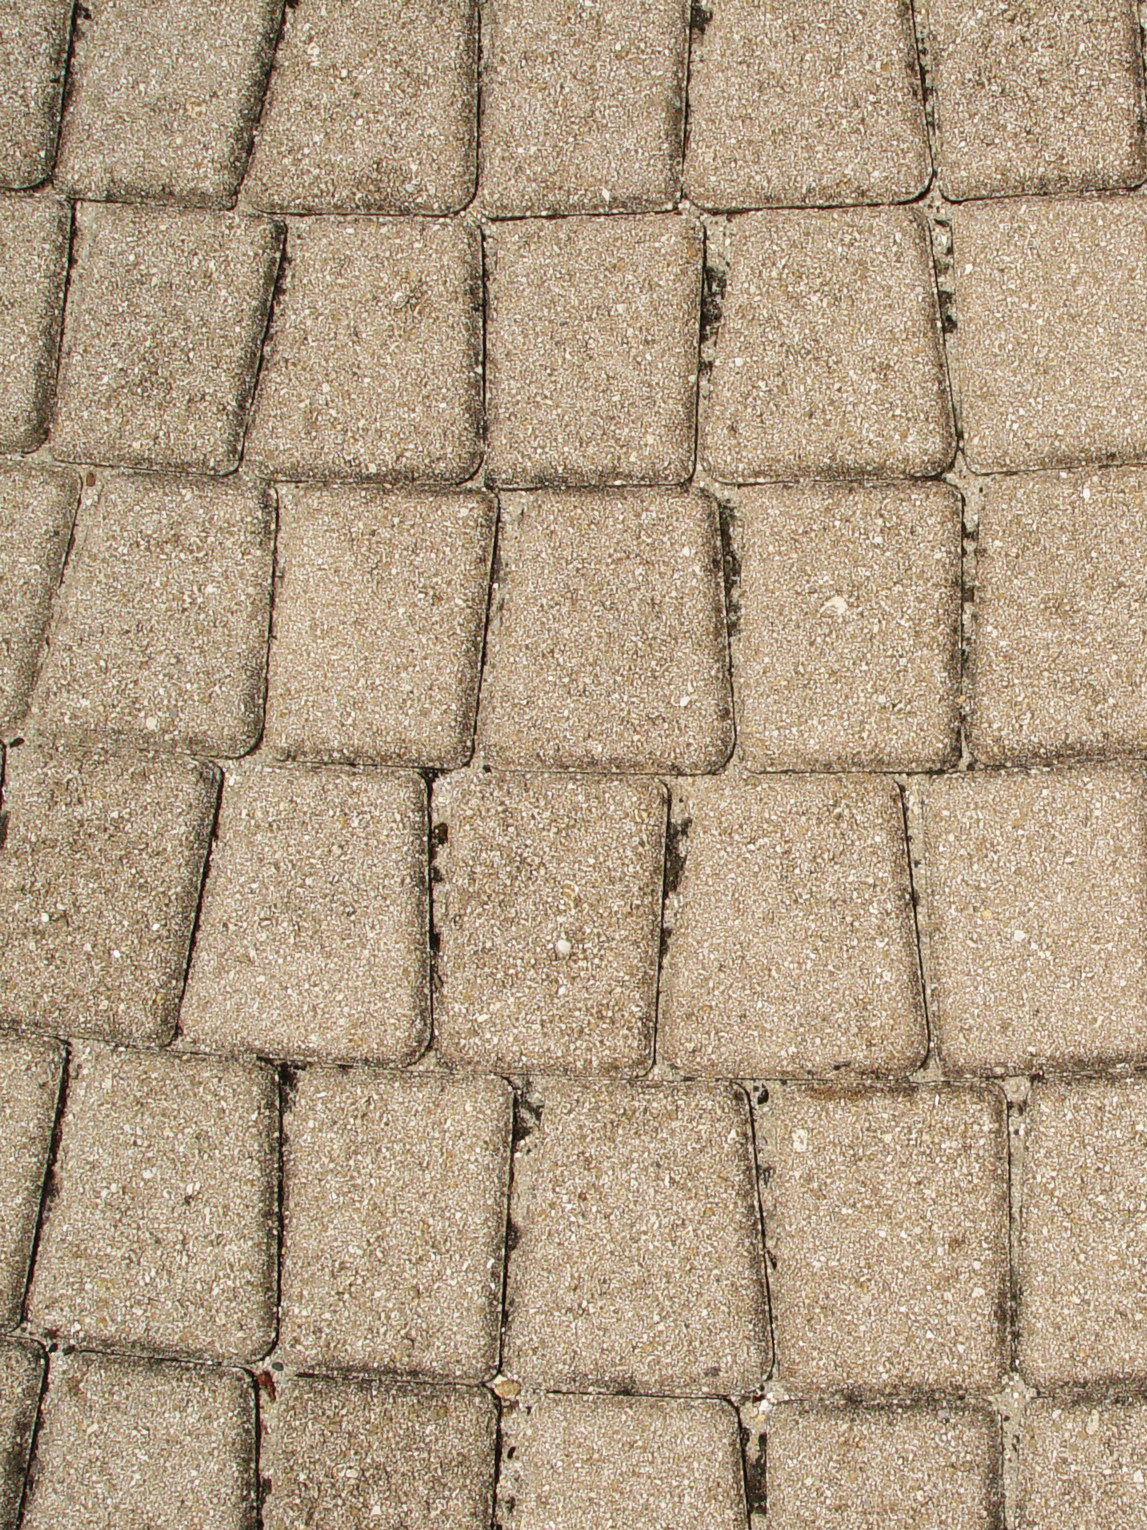 How To Clean Hard Water Stains From Stamped Concrete Ehow Uk